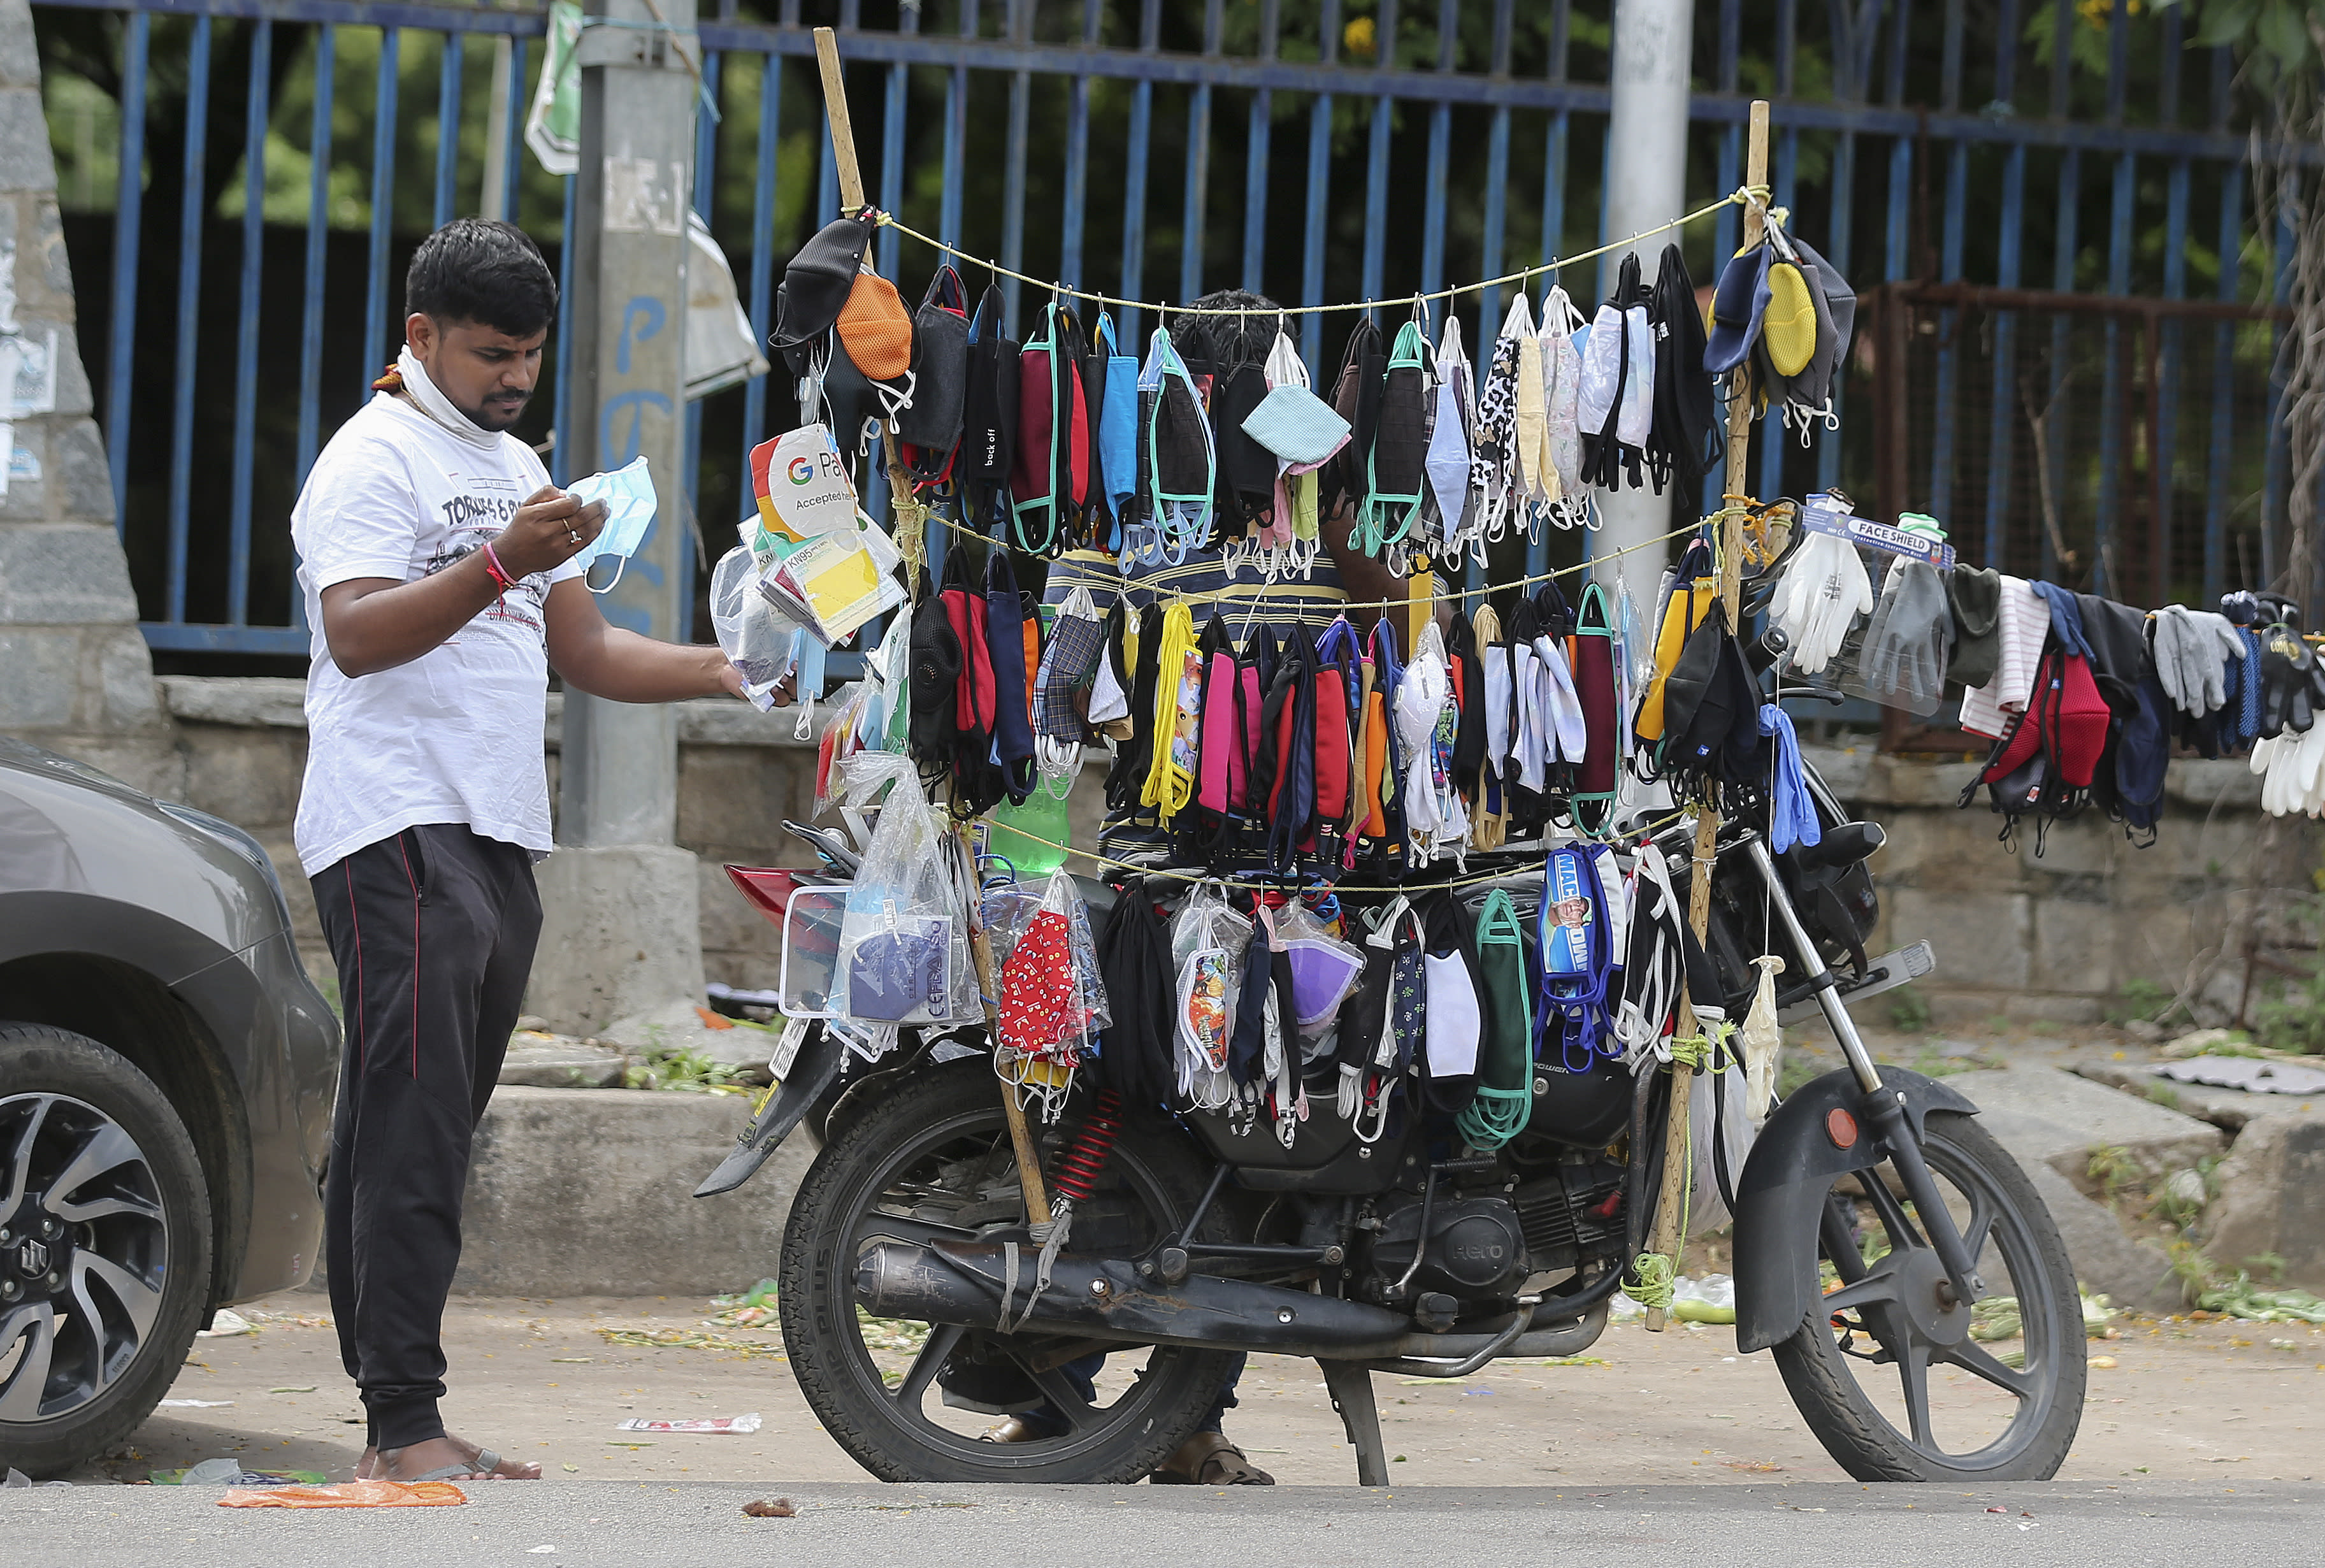 An Indian man checks a face mask before buying it in Hyderabad, India, Tuesday, Aug. 4, 2020. India is the third hardest-hit country by the pandemic in the world after the United States and Brazil. (AP Photo/Mahesh Kumar A.)